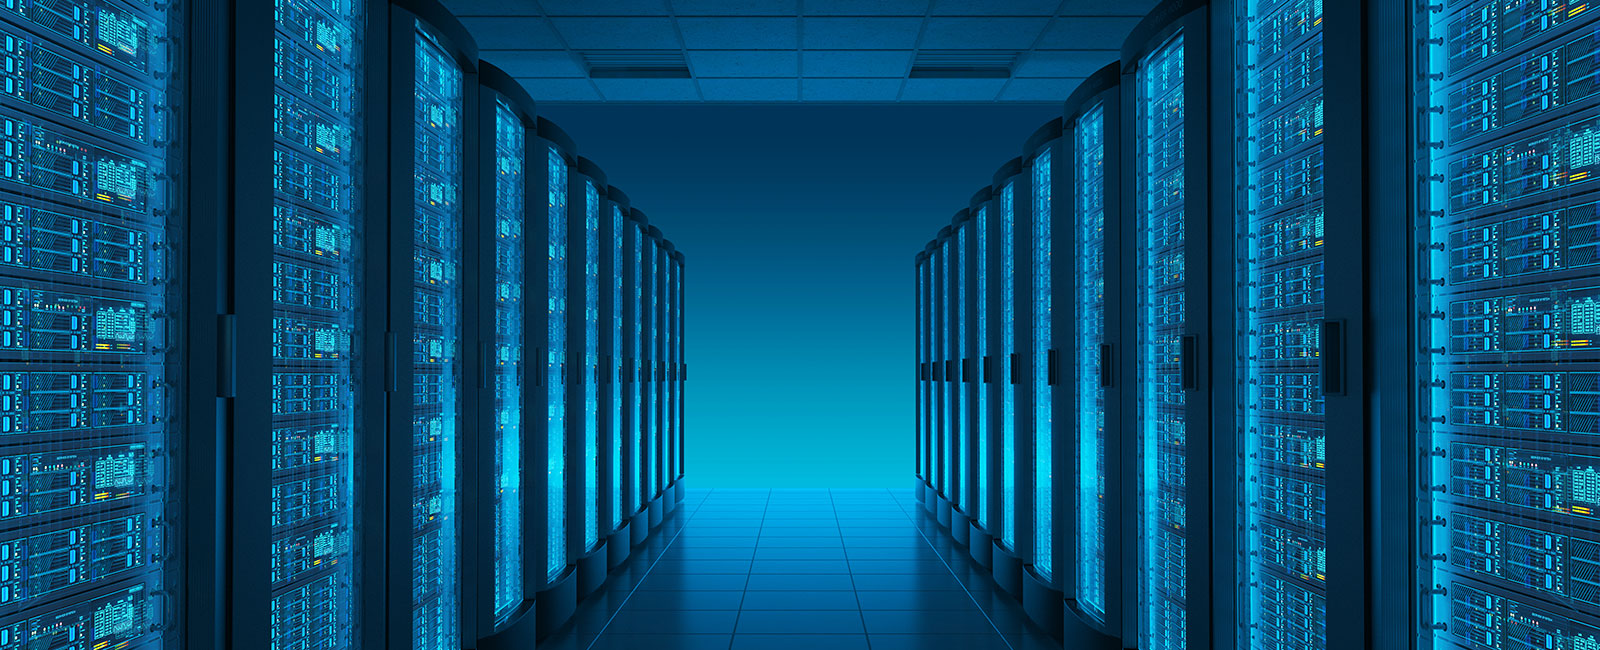 dark-data-centers-reduce-the-need-for-hands-on-management.jpg